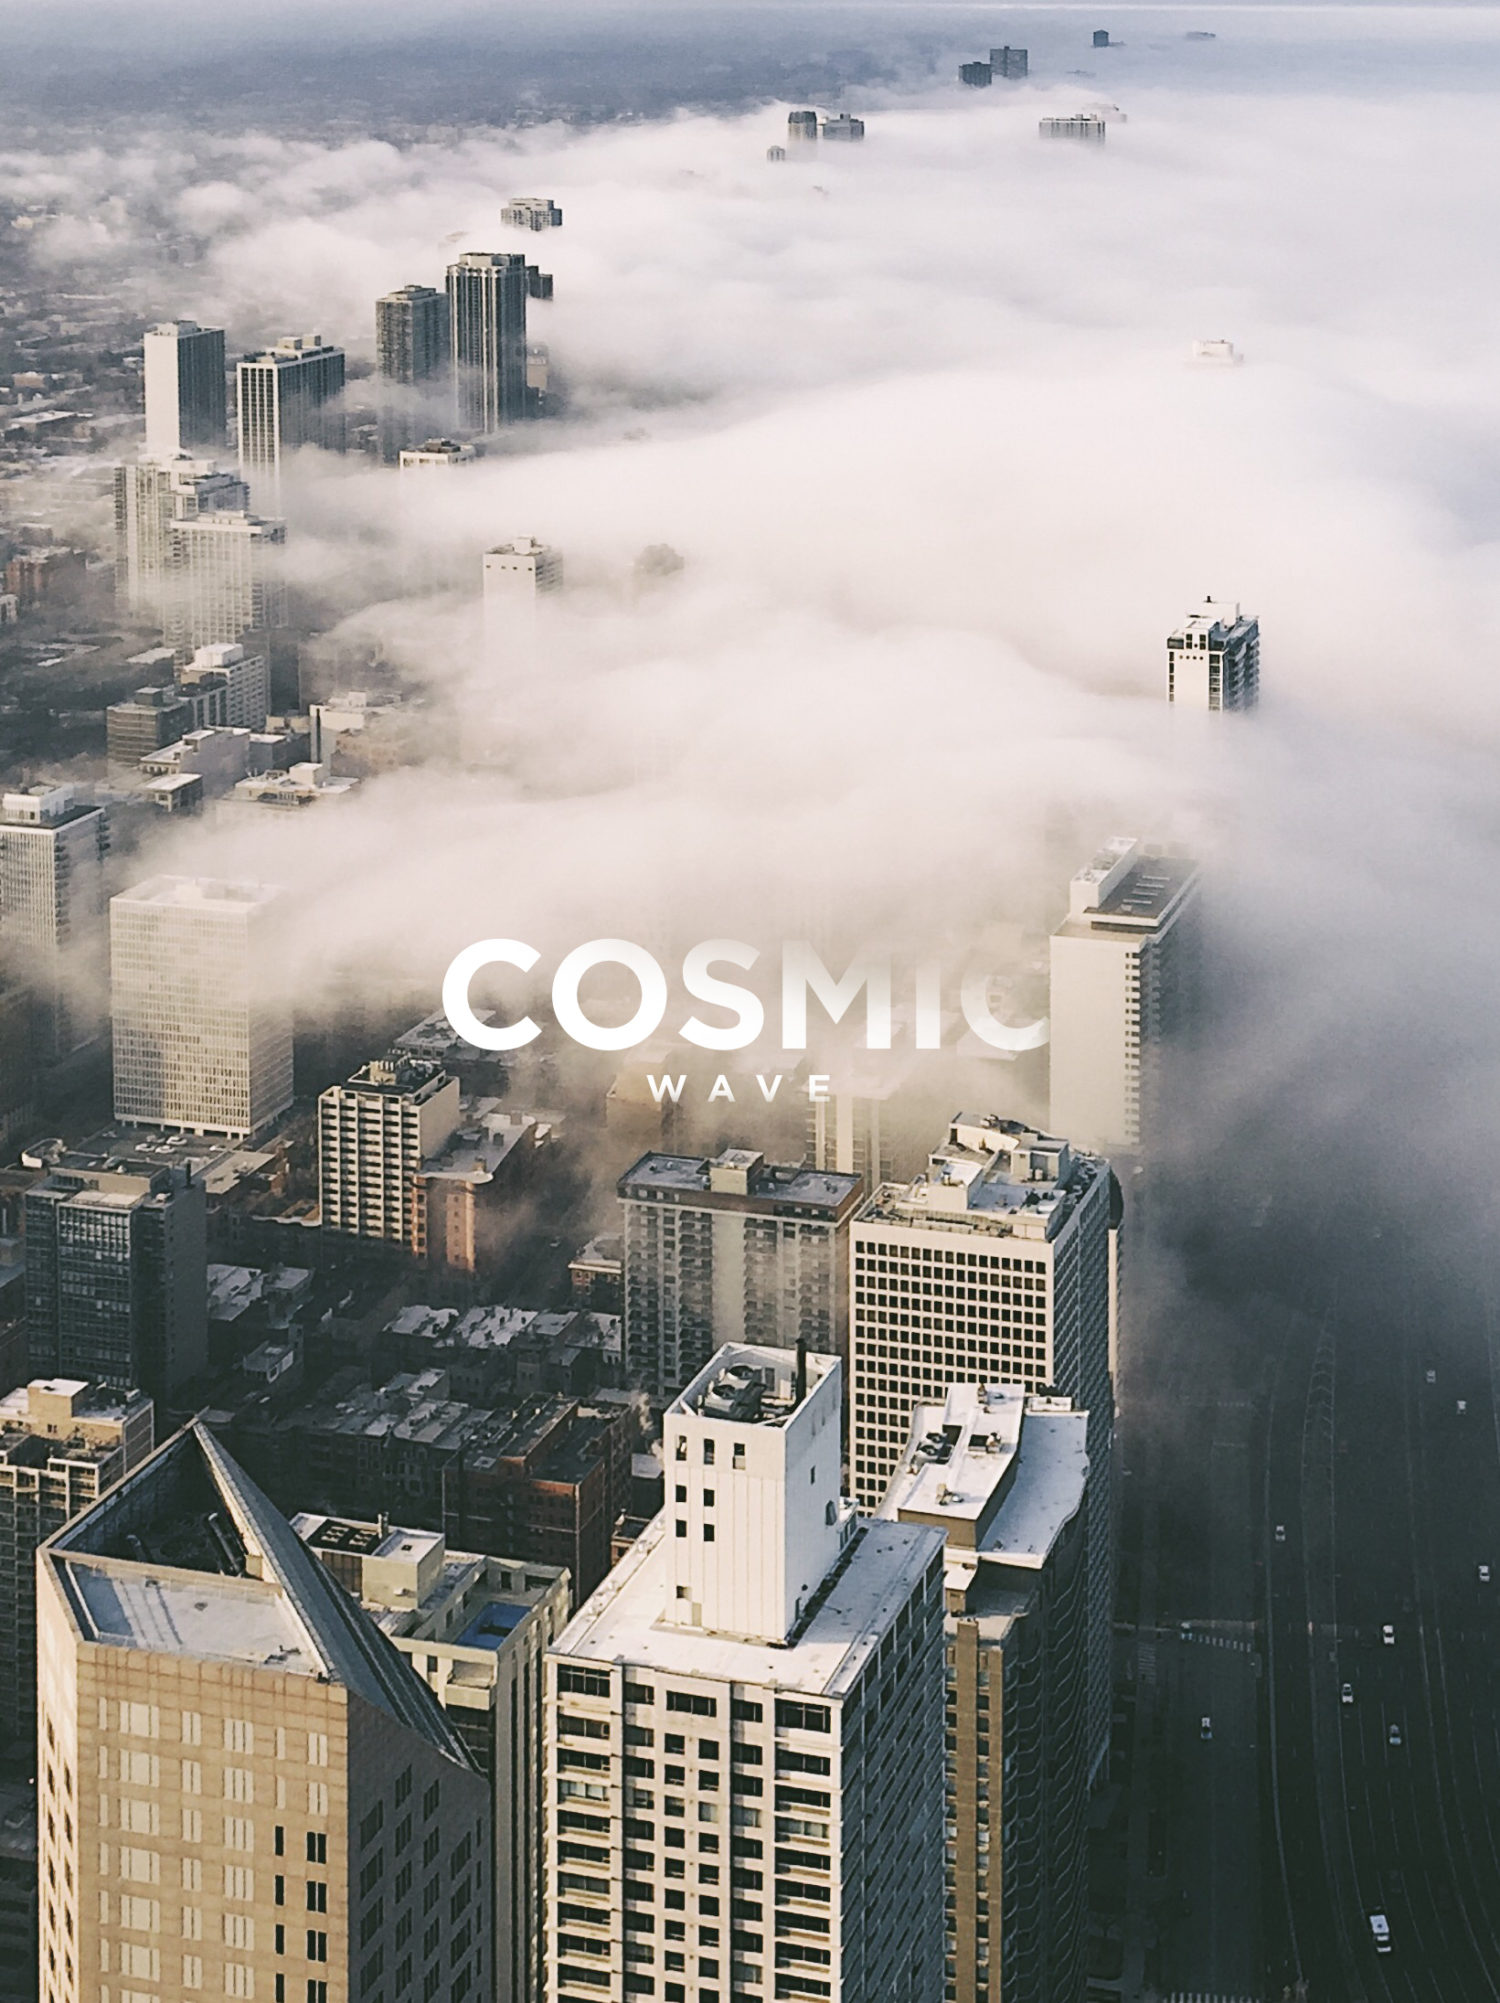 Cosmic After